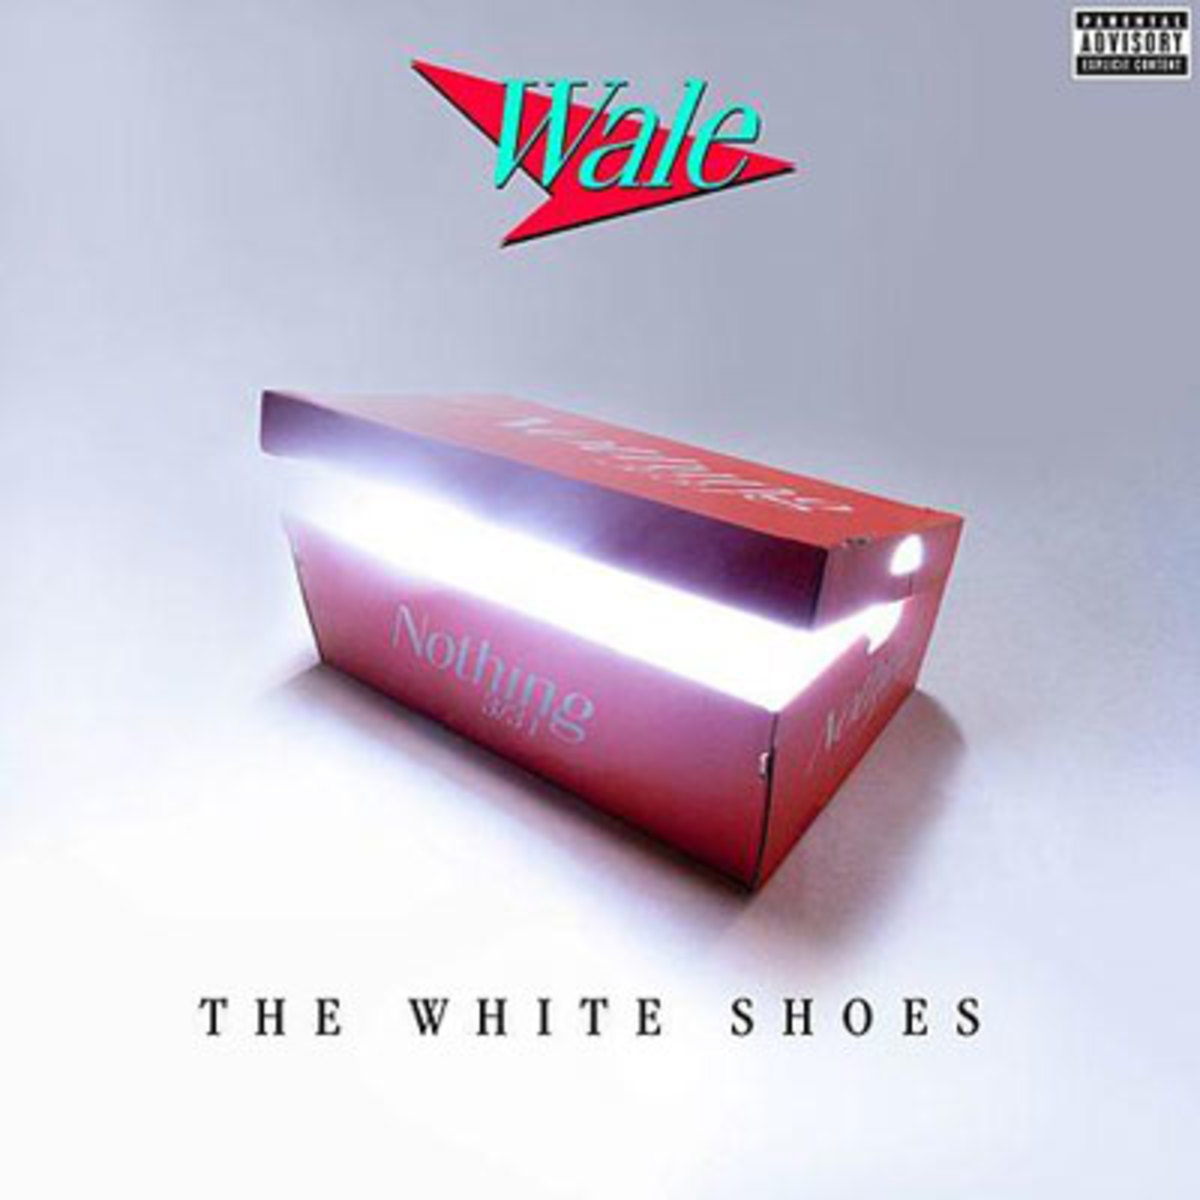 wale-the-white-shoes.jpg